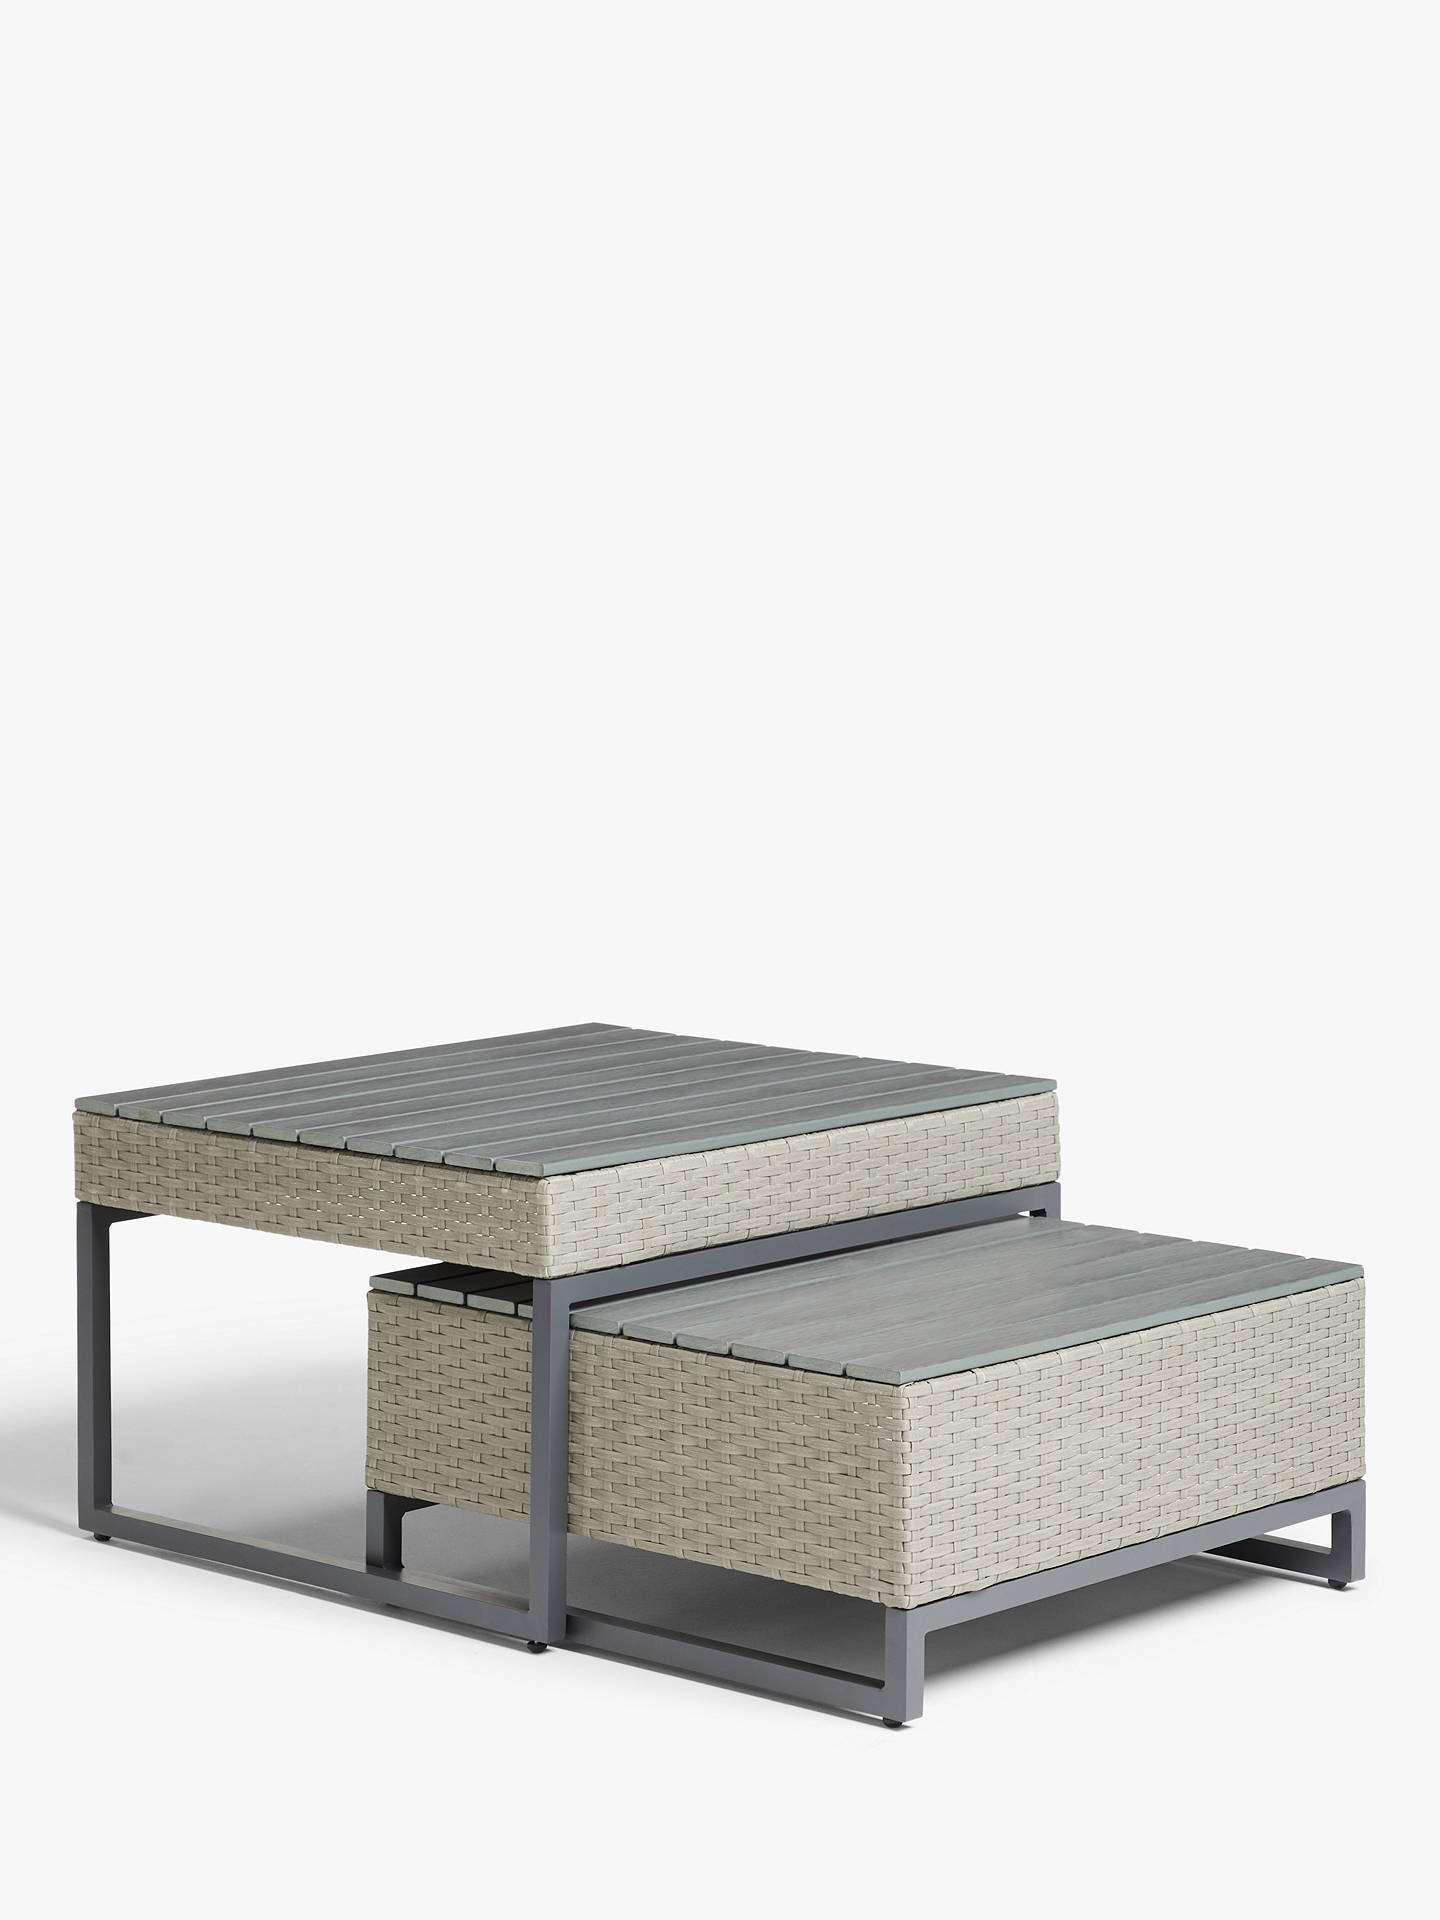 john lewis partners valencia garden high low coffee tables set of 2 light grey